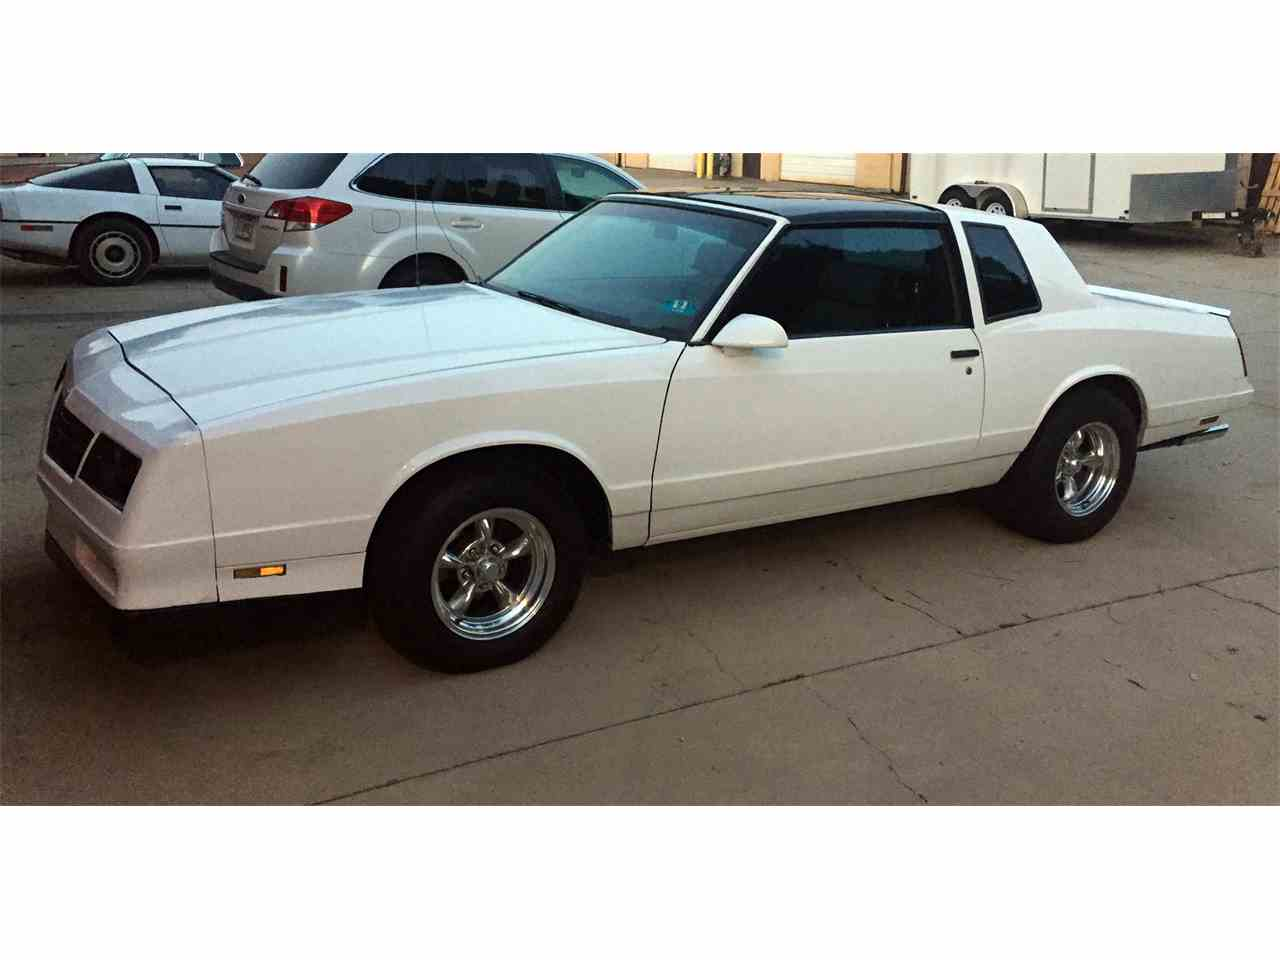 All Chevy 1988 chevrolet monte carlo ss for sale : 1988 Chevrolet Monte Carlo SS for Sale | ClassicCars.com | CC-1040946